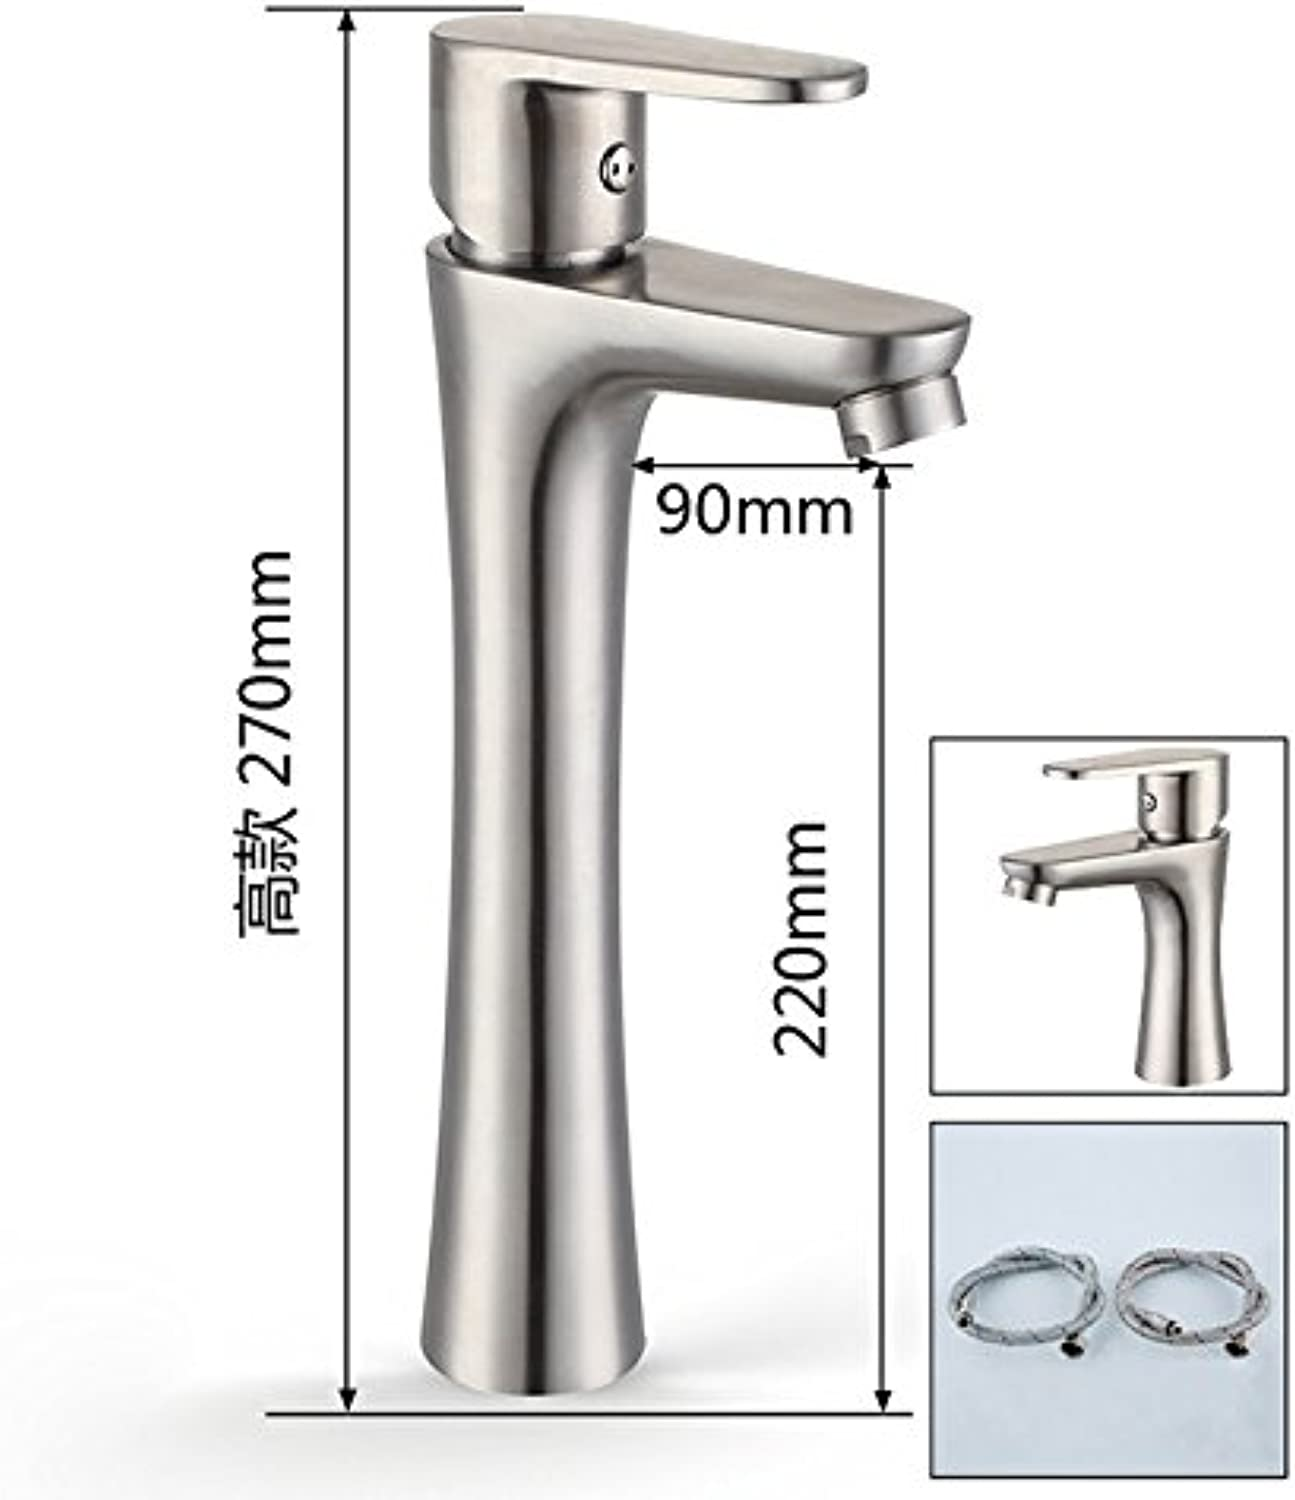 Hlluya Professional Sink Mixer Tap Kitchen Faucet Stainless Steel Basin faucet brushed hot and cold taps, high, the CS6633 60CM water inlet pipe surface basin